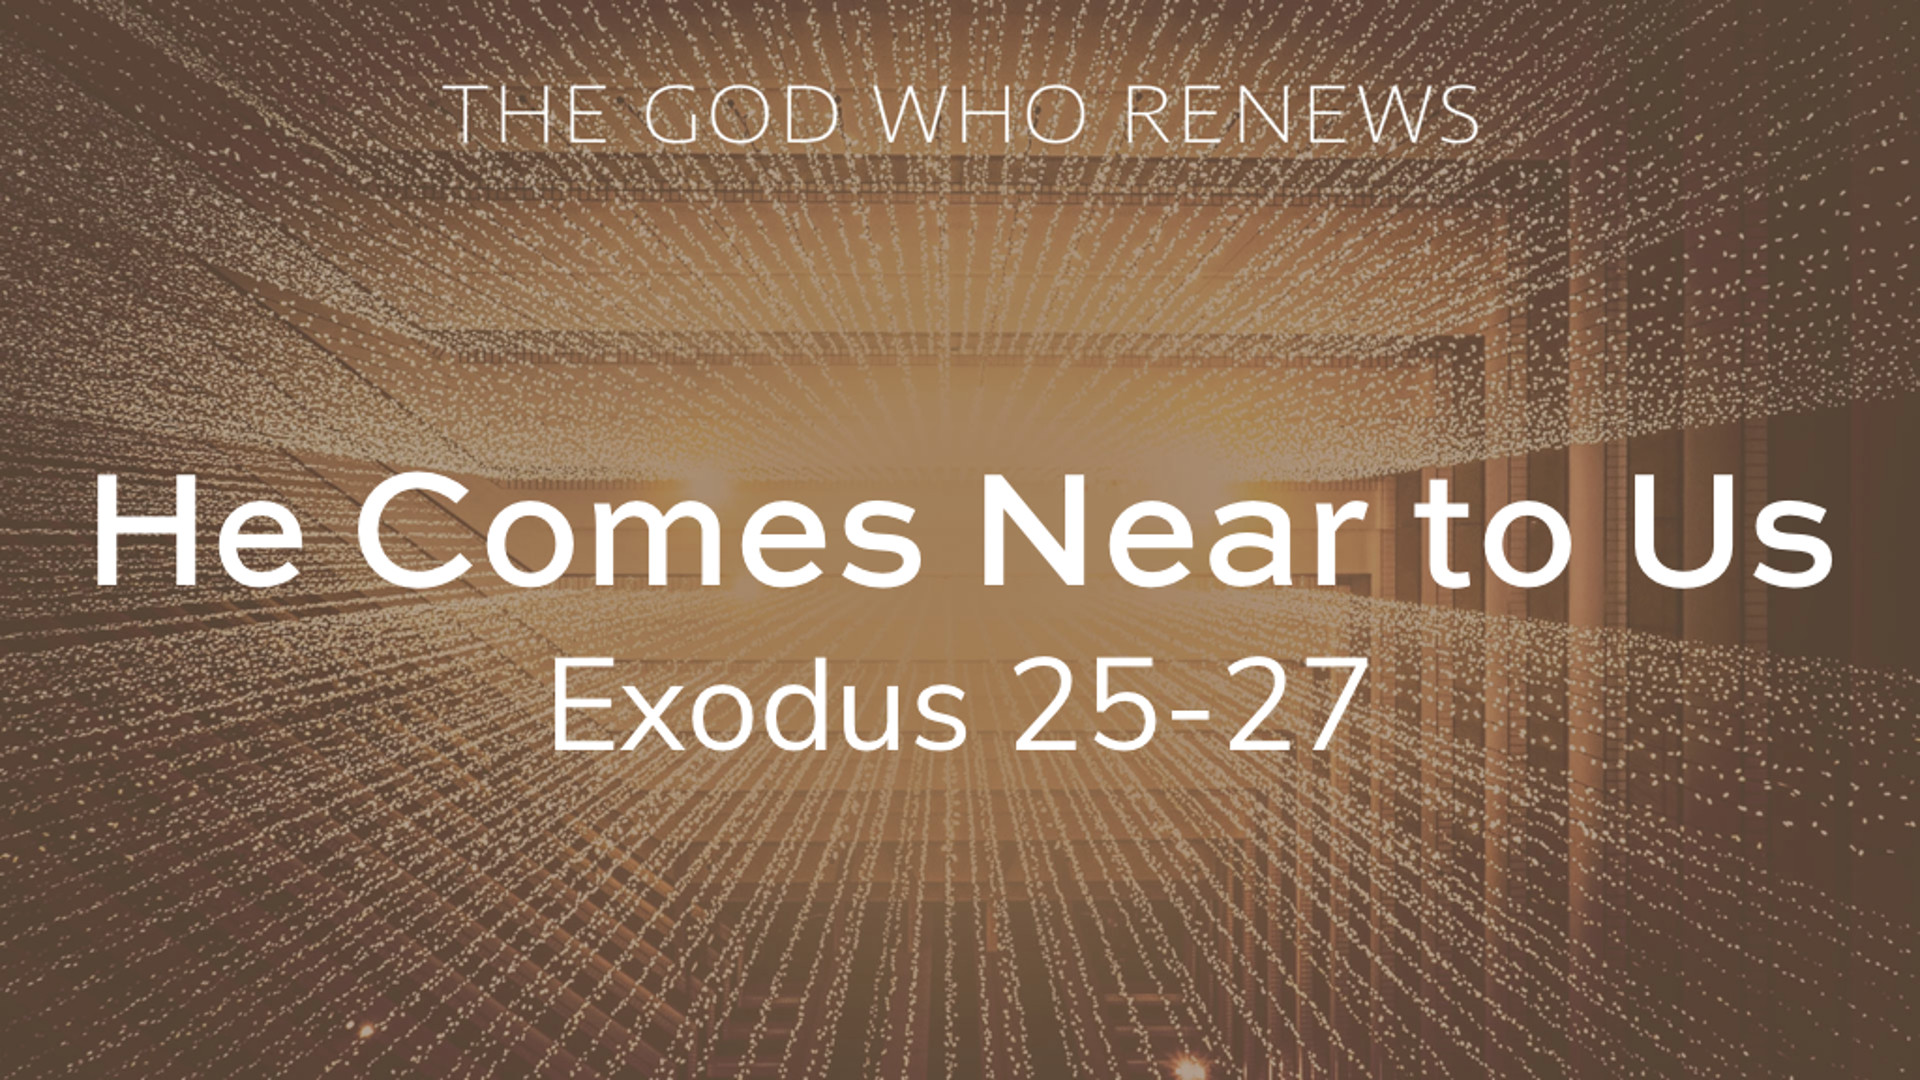 Exodus 25-27 - He Comes Near to Us.jpg